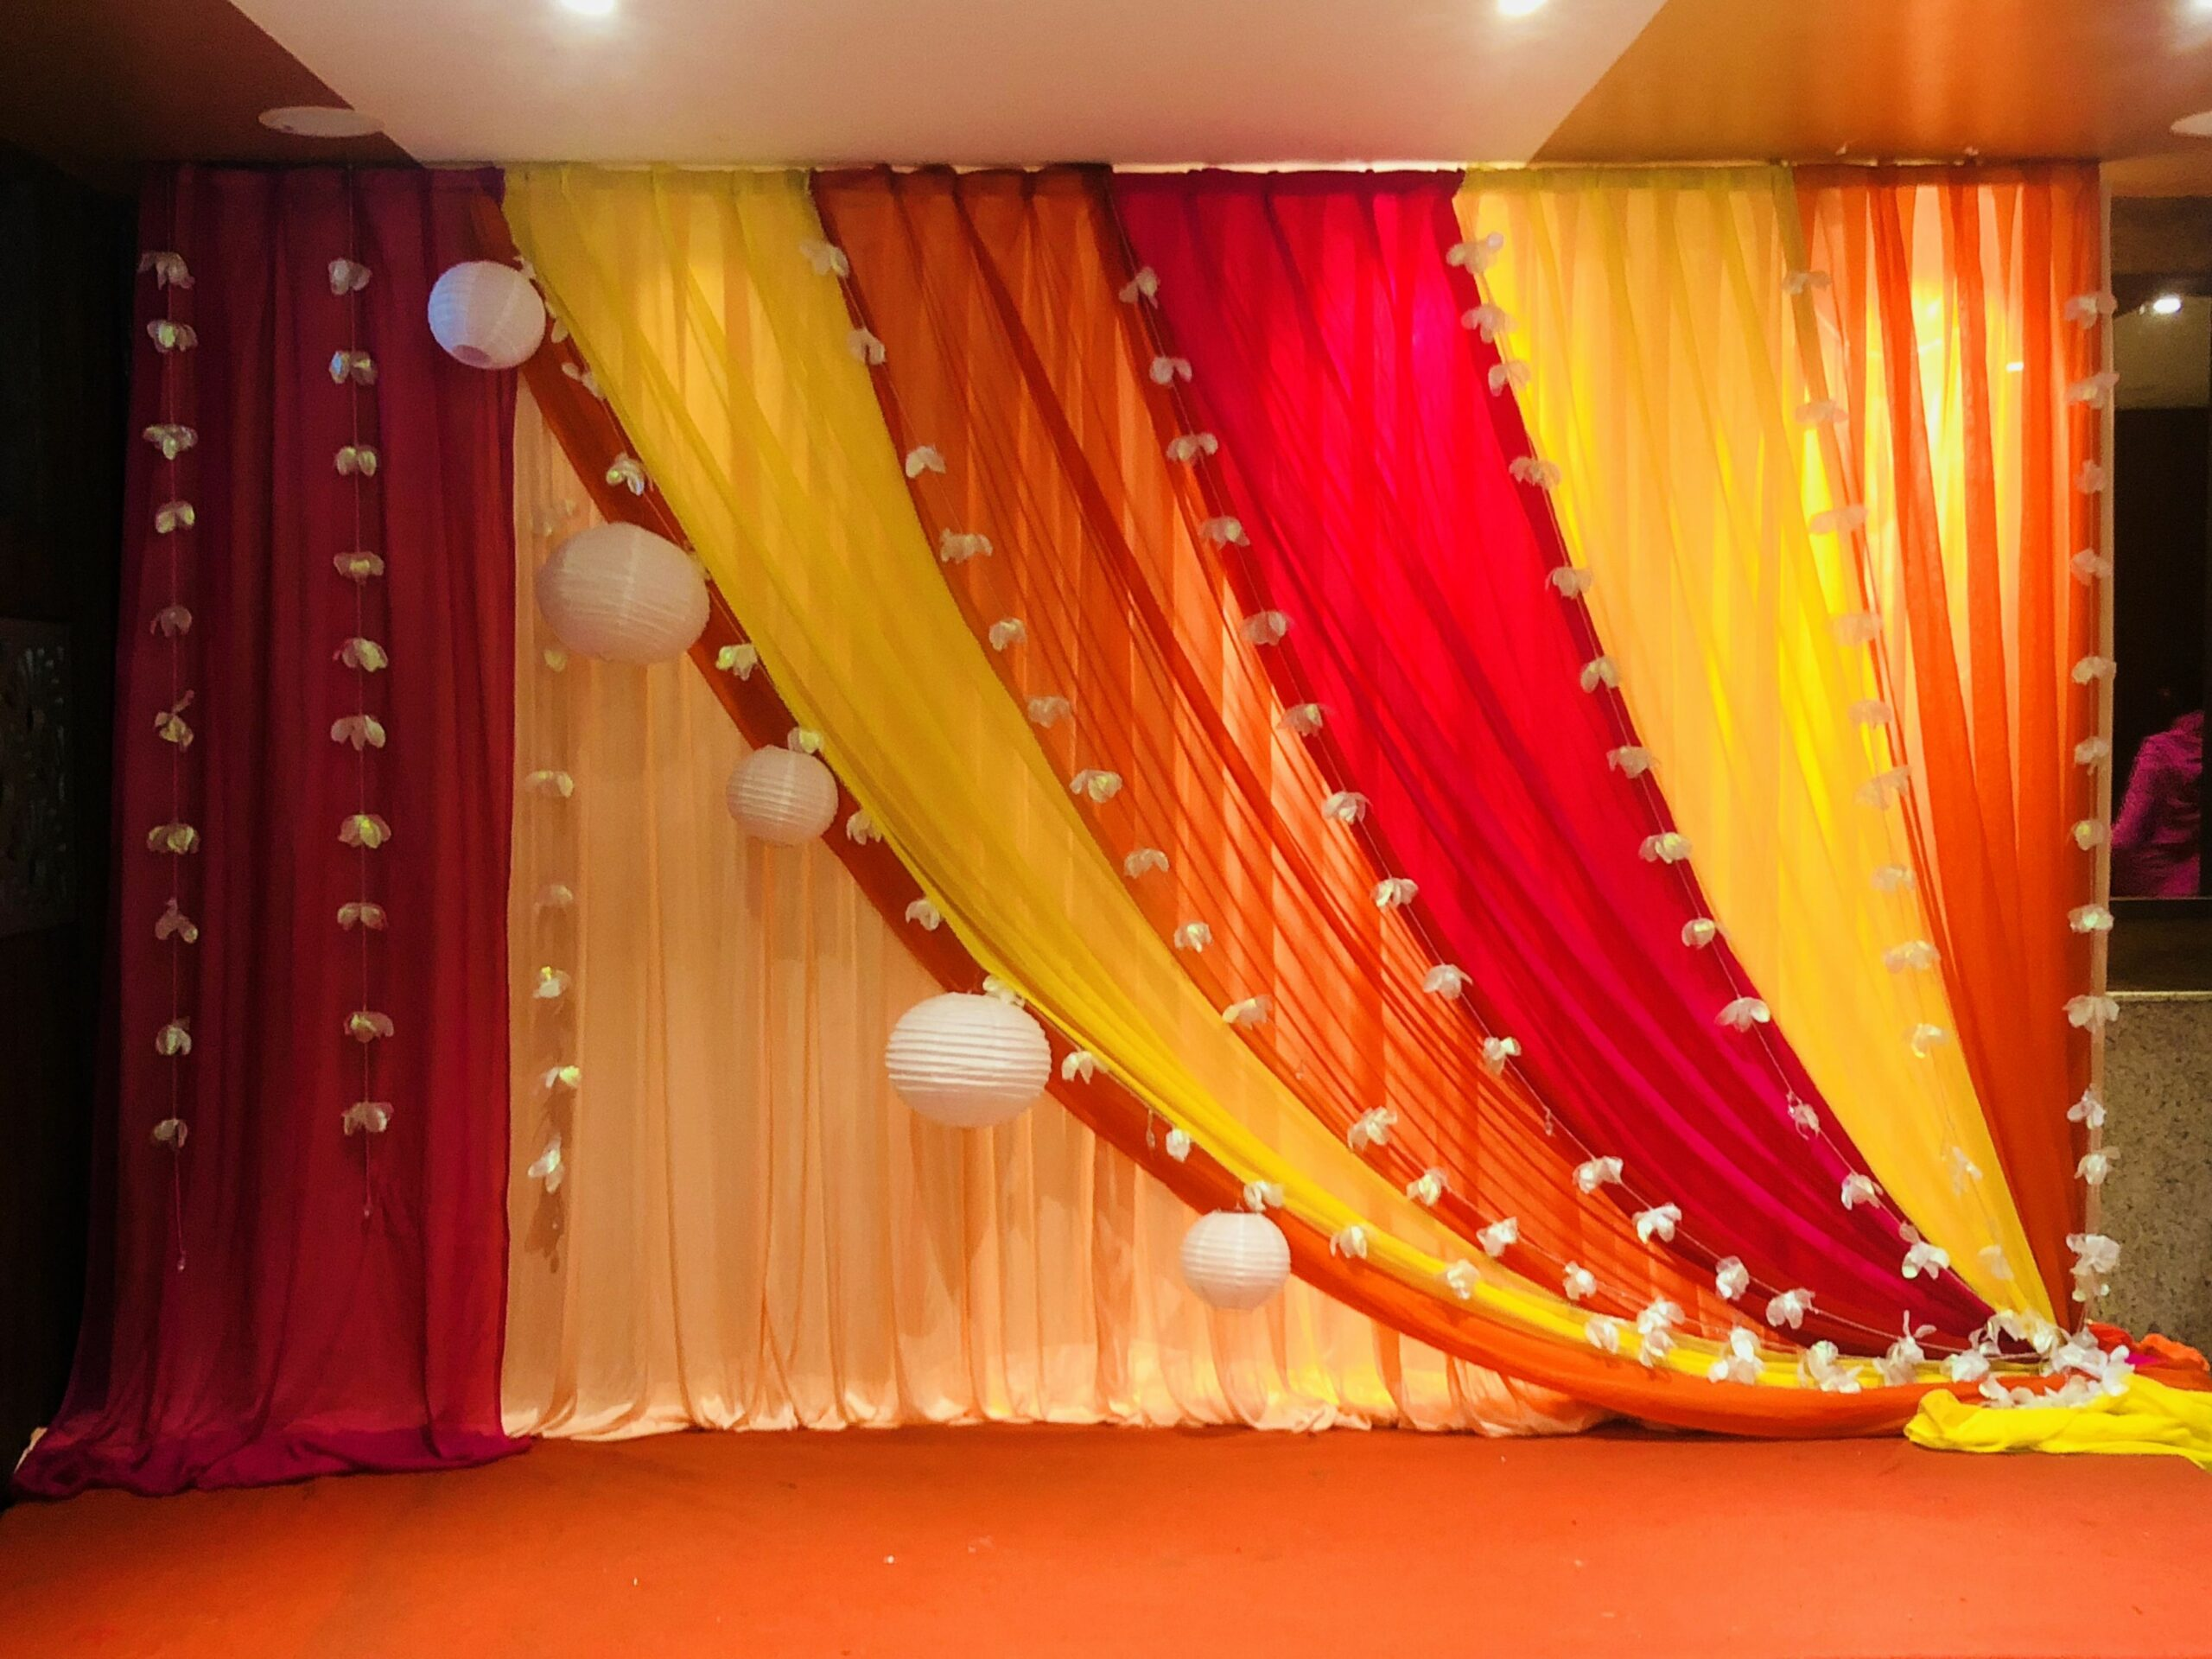 Indian wedding/engagement/party decor (With images) | Engagement ..